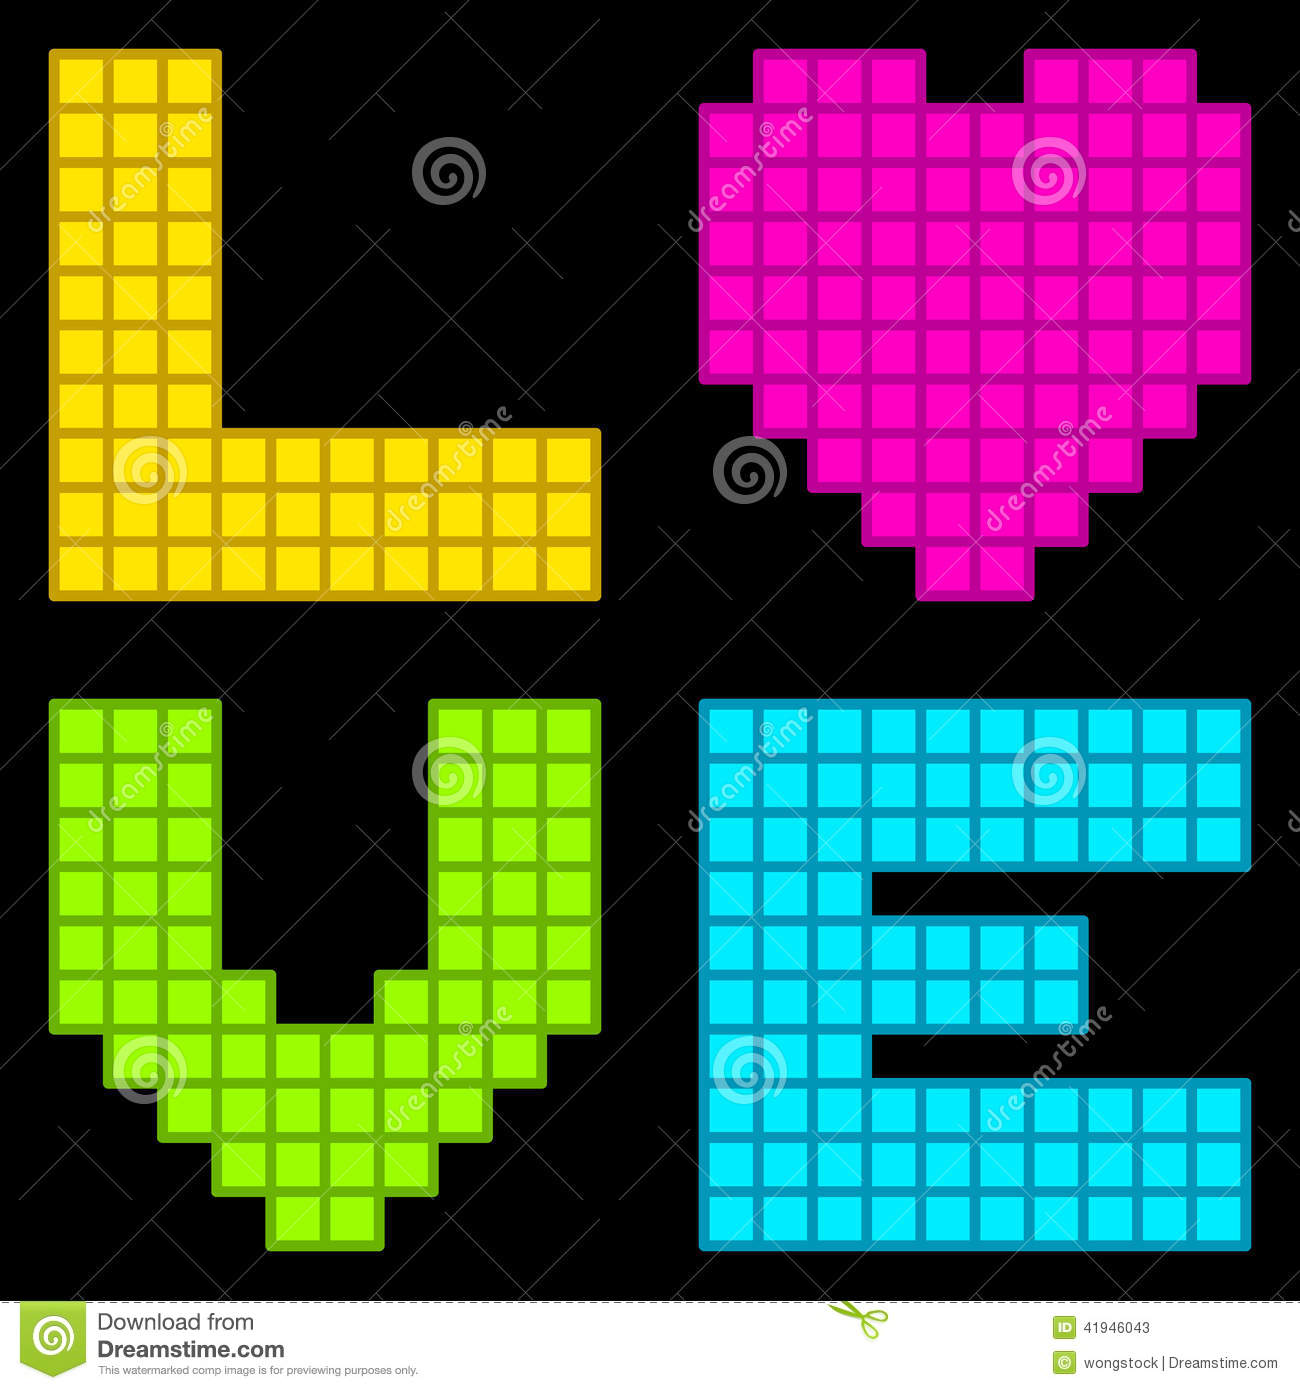 8 bit retro pixel love heart stock vector illustration of love text 41946043. Black Bedroom Furniture Sets. Home Design Ideas